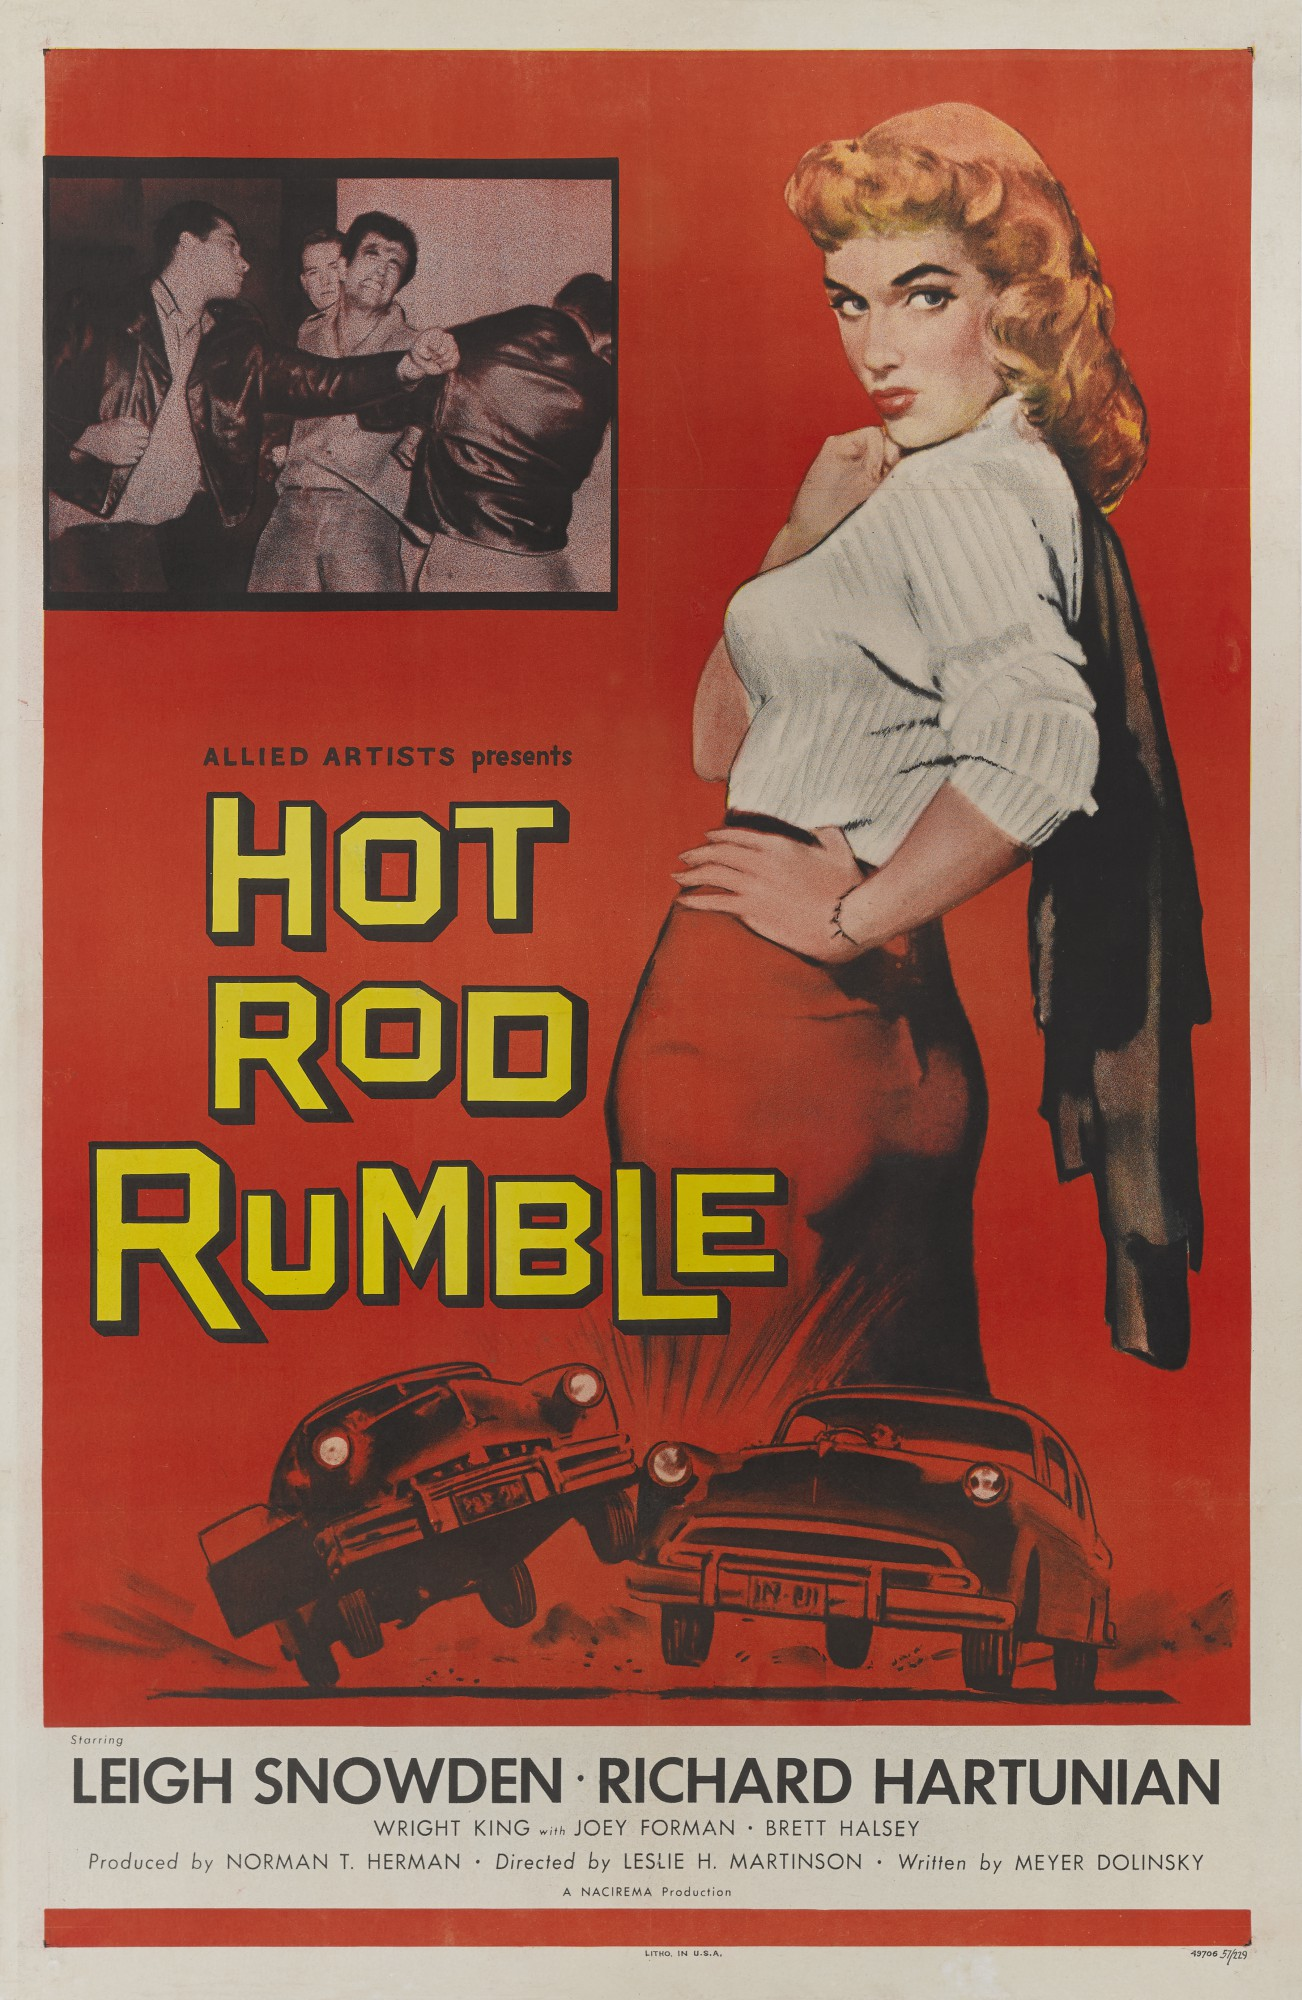 HOT ROD RUMBLE (1957) POSTER, US